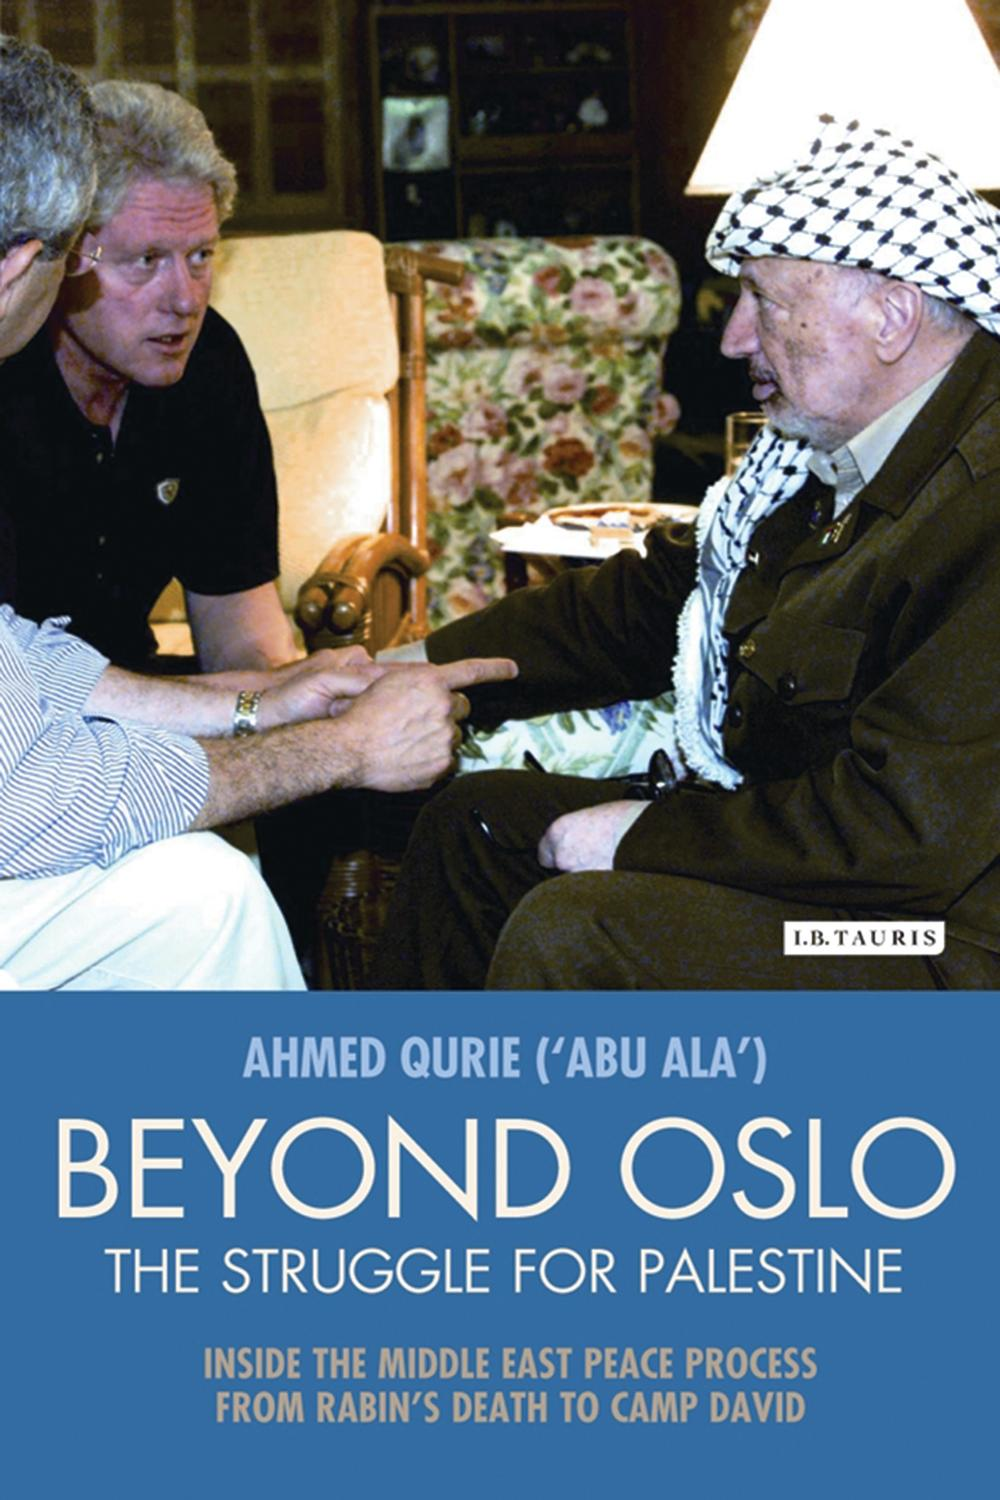 Beyond Oslo, the Struggle for Palestine